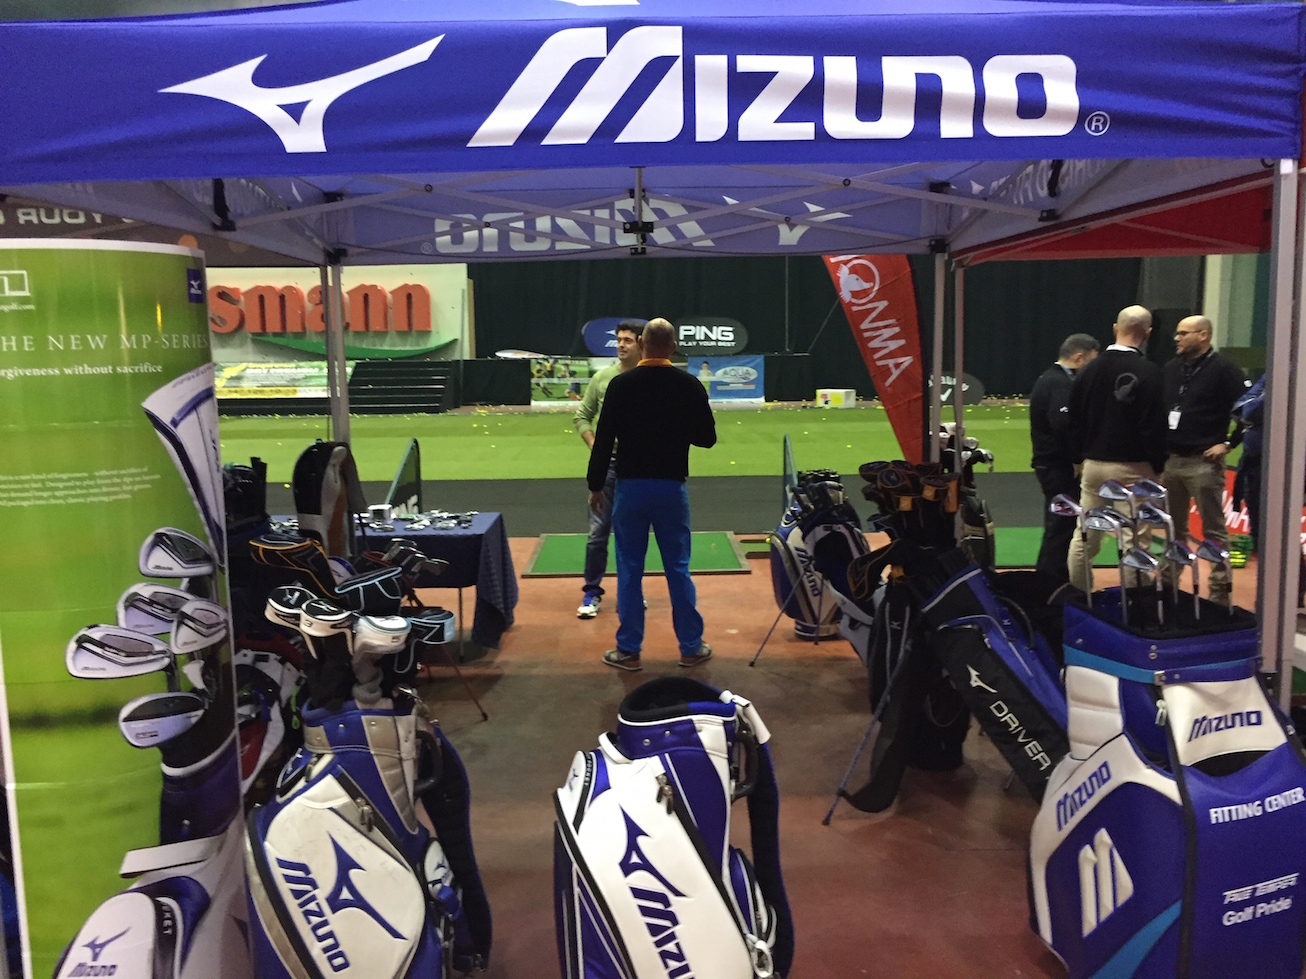 Fiera del Golf Parma 2015 le foto ed i video di Italian Golf Show e le prove dei materiali49 - Fiera del Golf Parma: le foto ed i video di Italian Golf Show